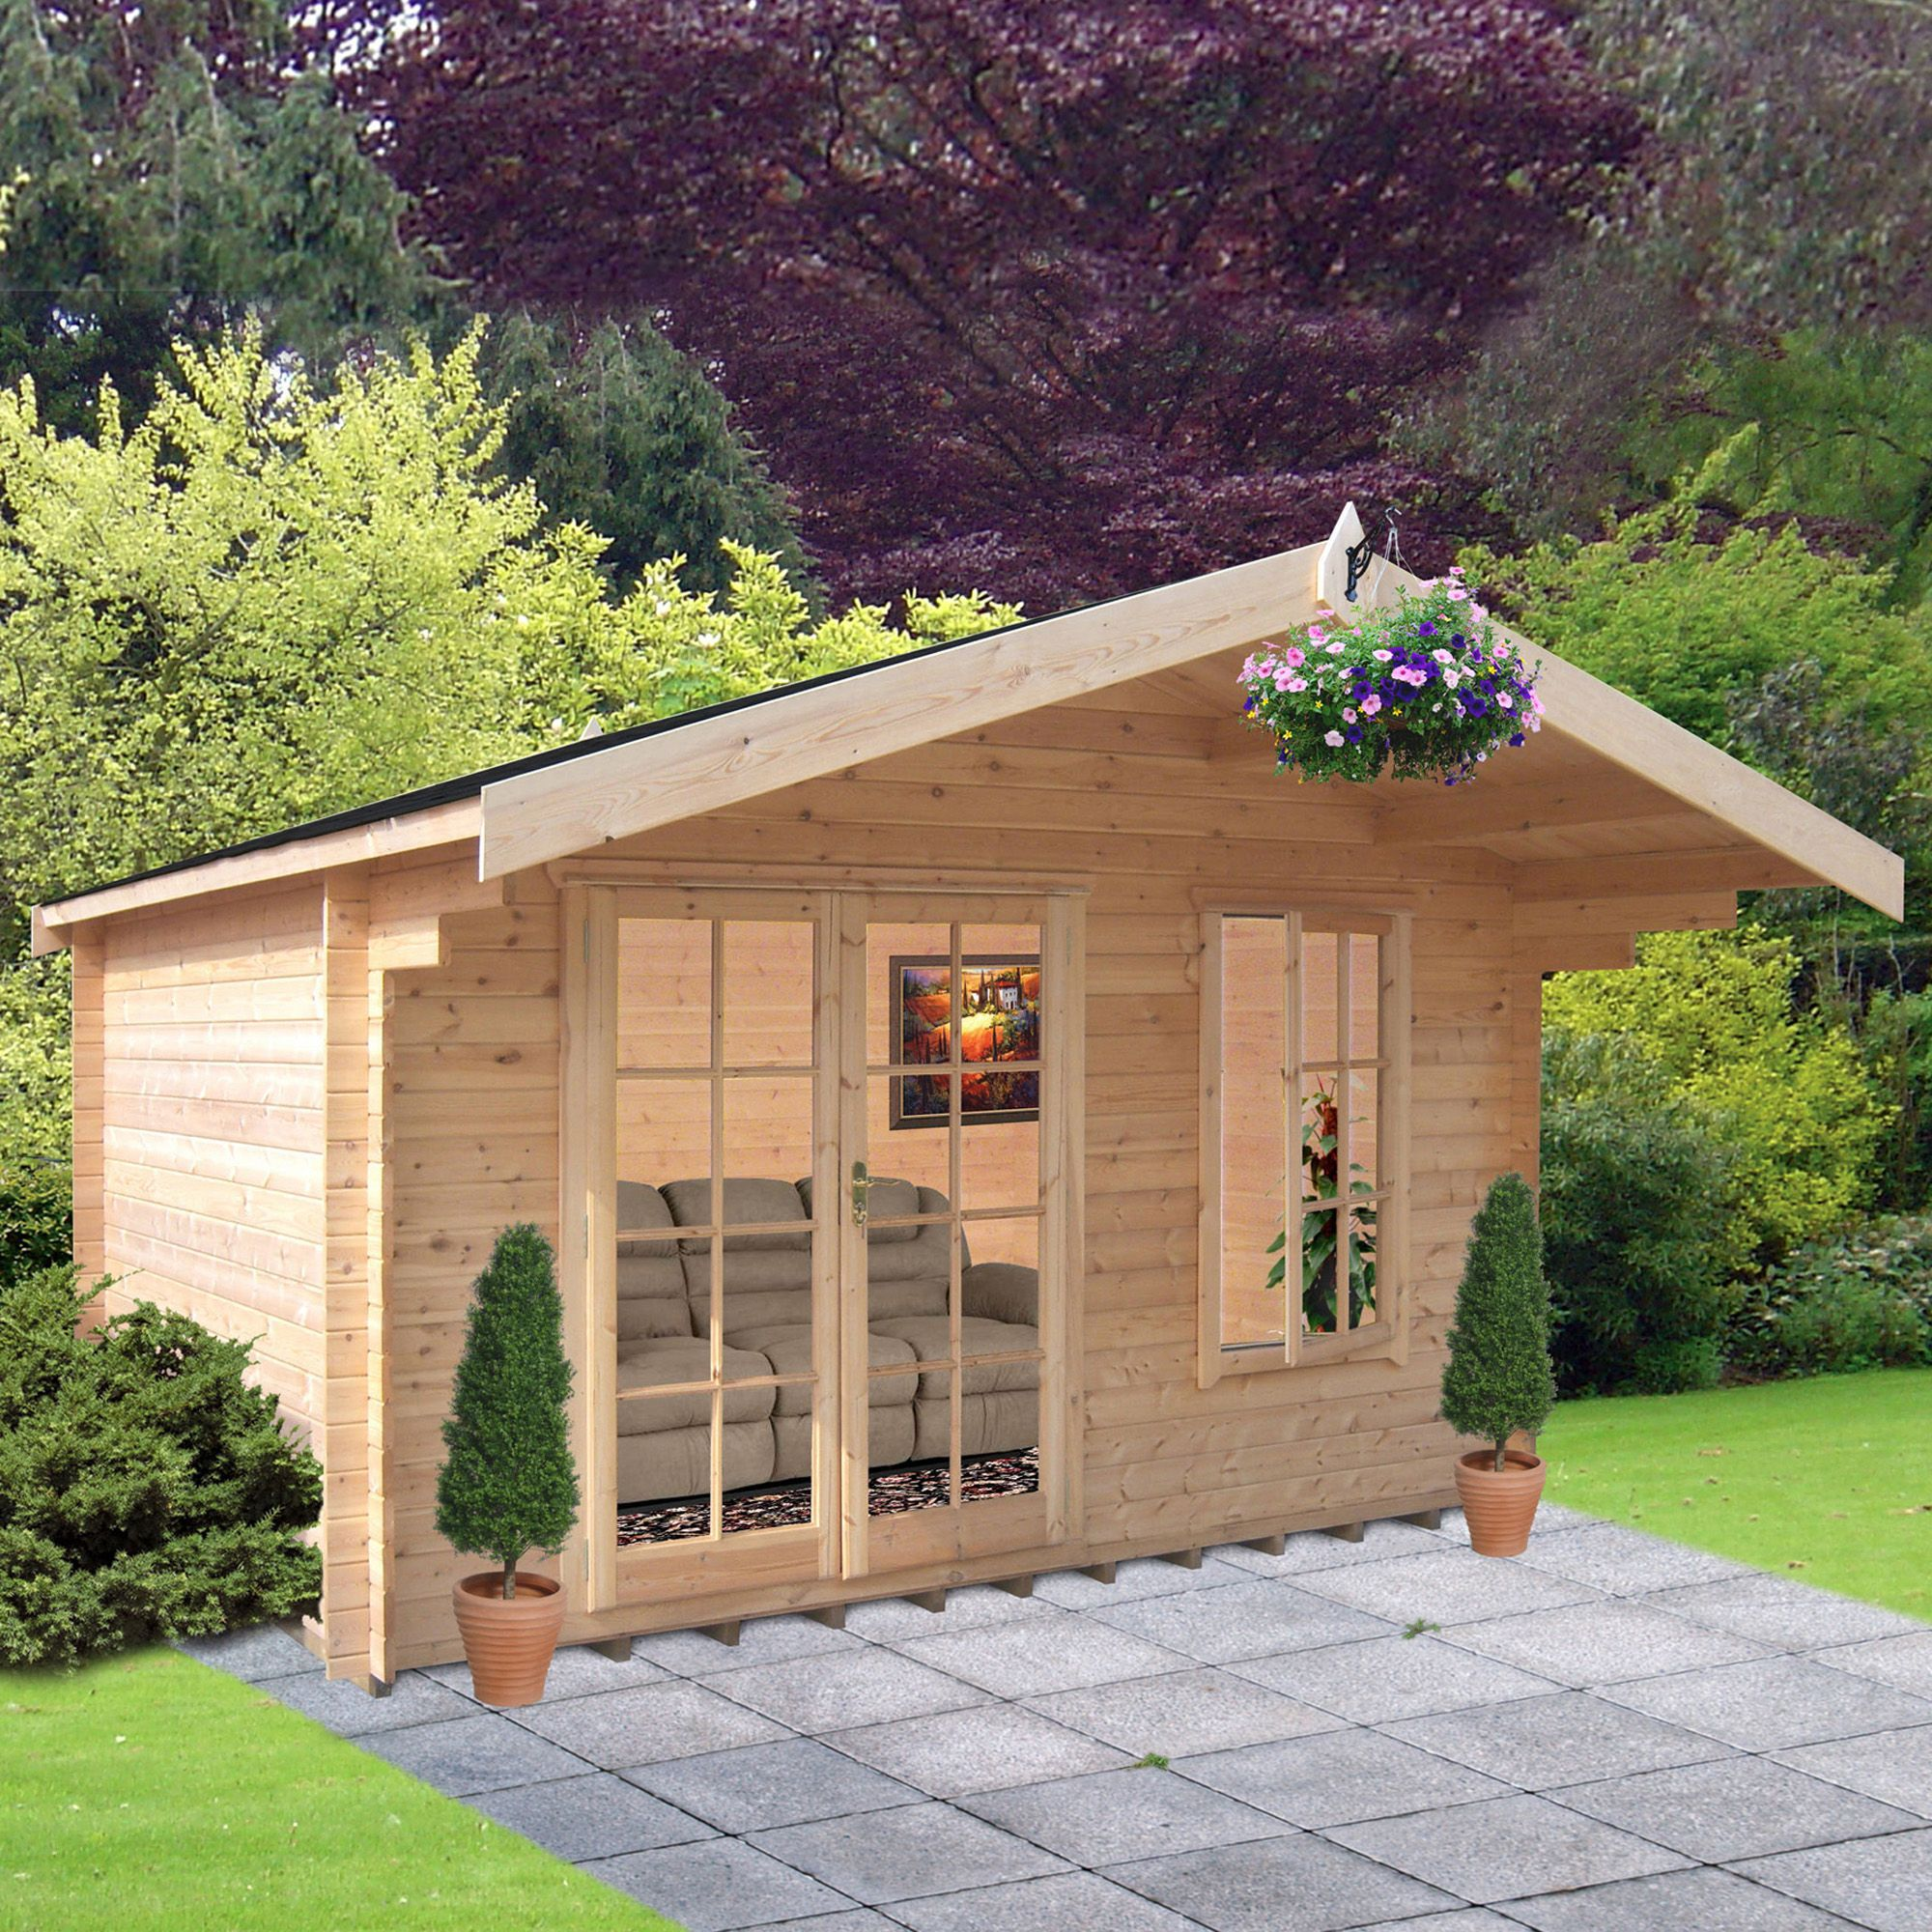 12x12 Cannock 28mm Tongue & Groove Log cabin